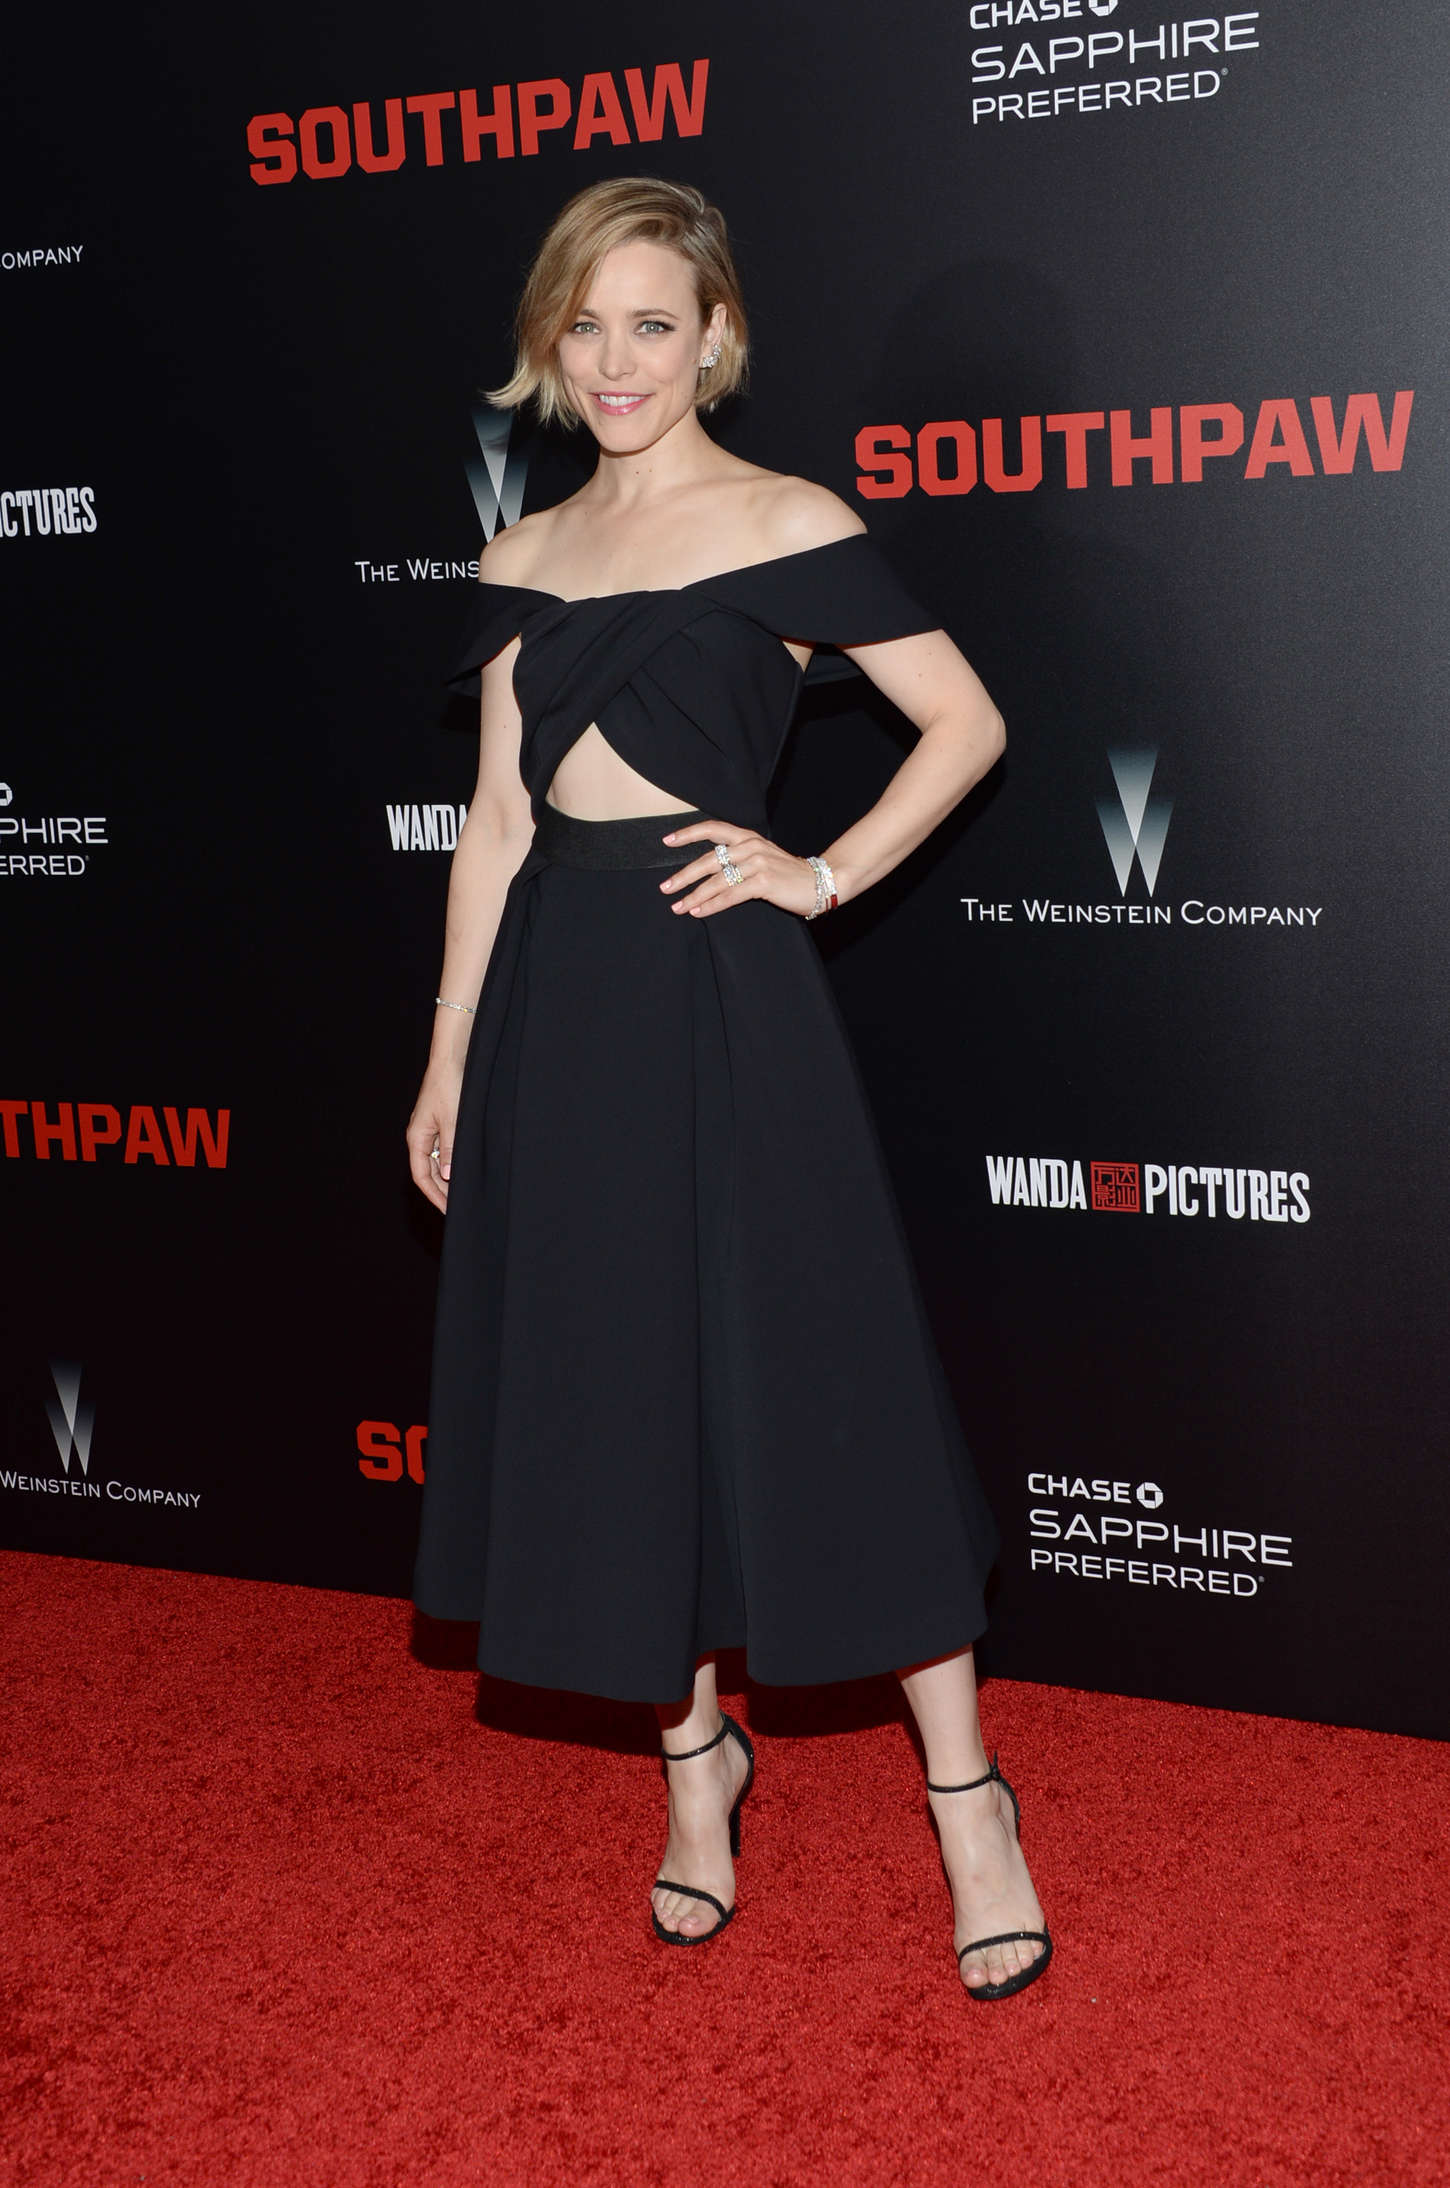 Rachel McAdams Southpaw Premiere in New York